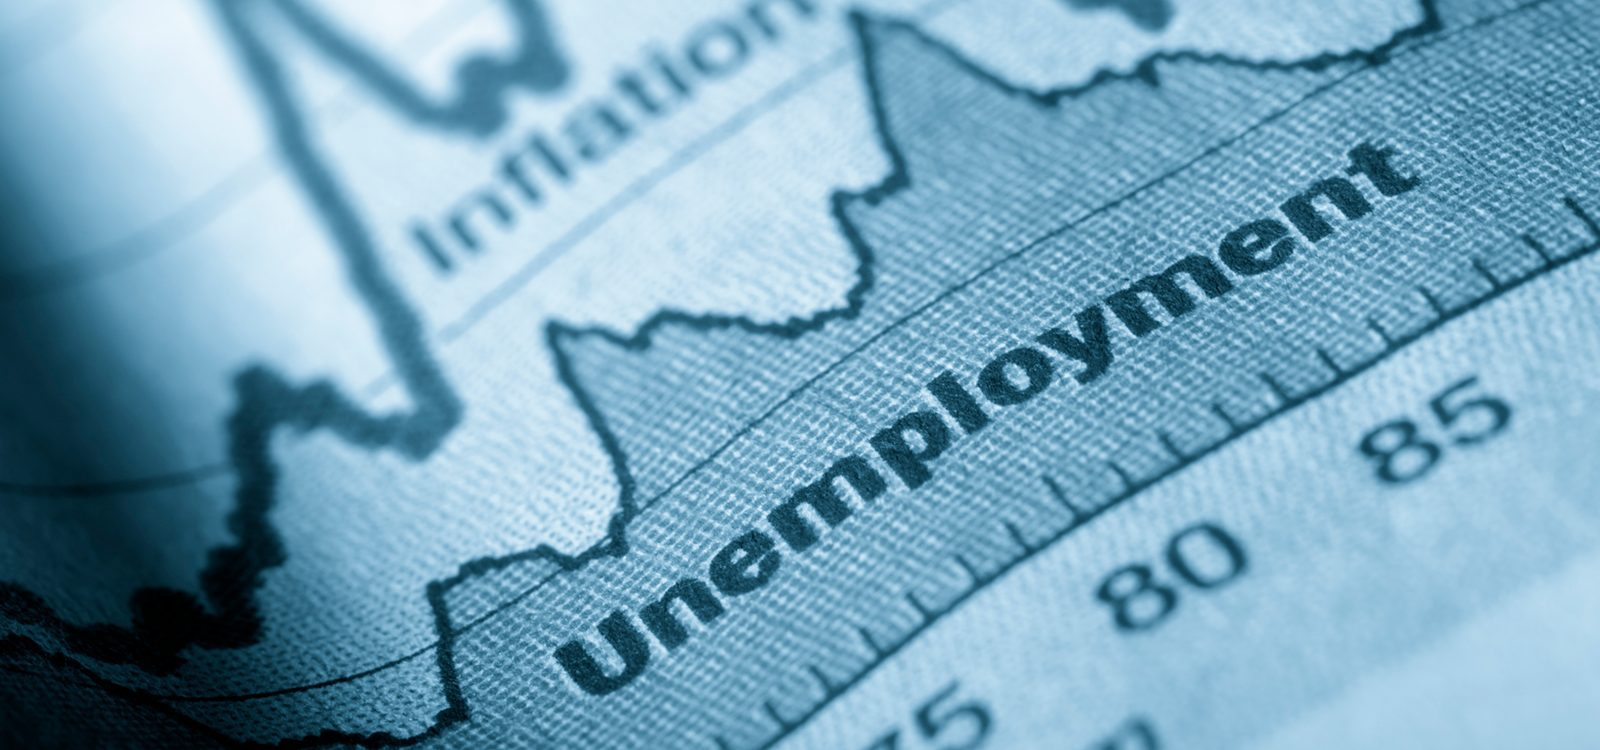 What is the relationship between unemployment rate and disability claims experience?